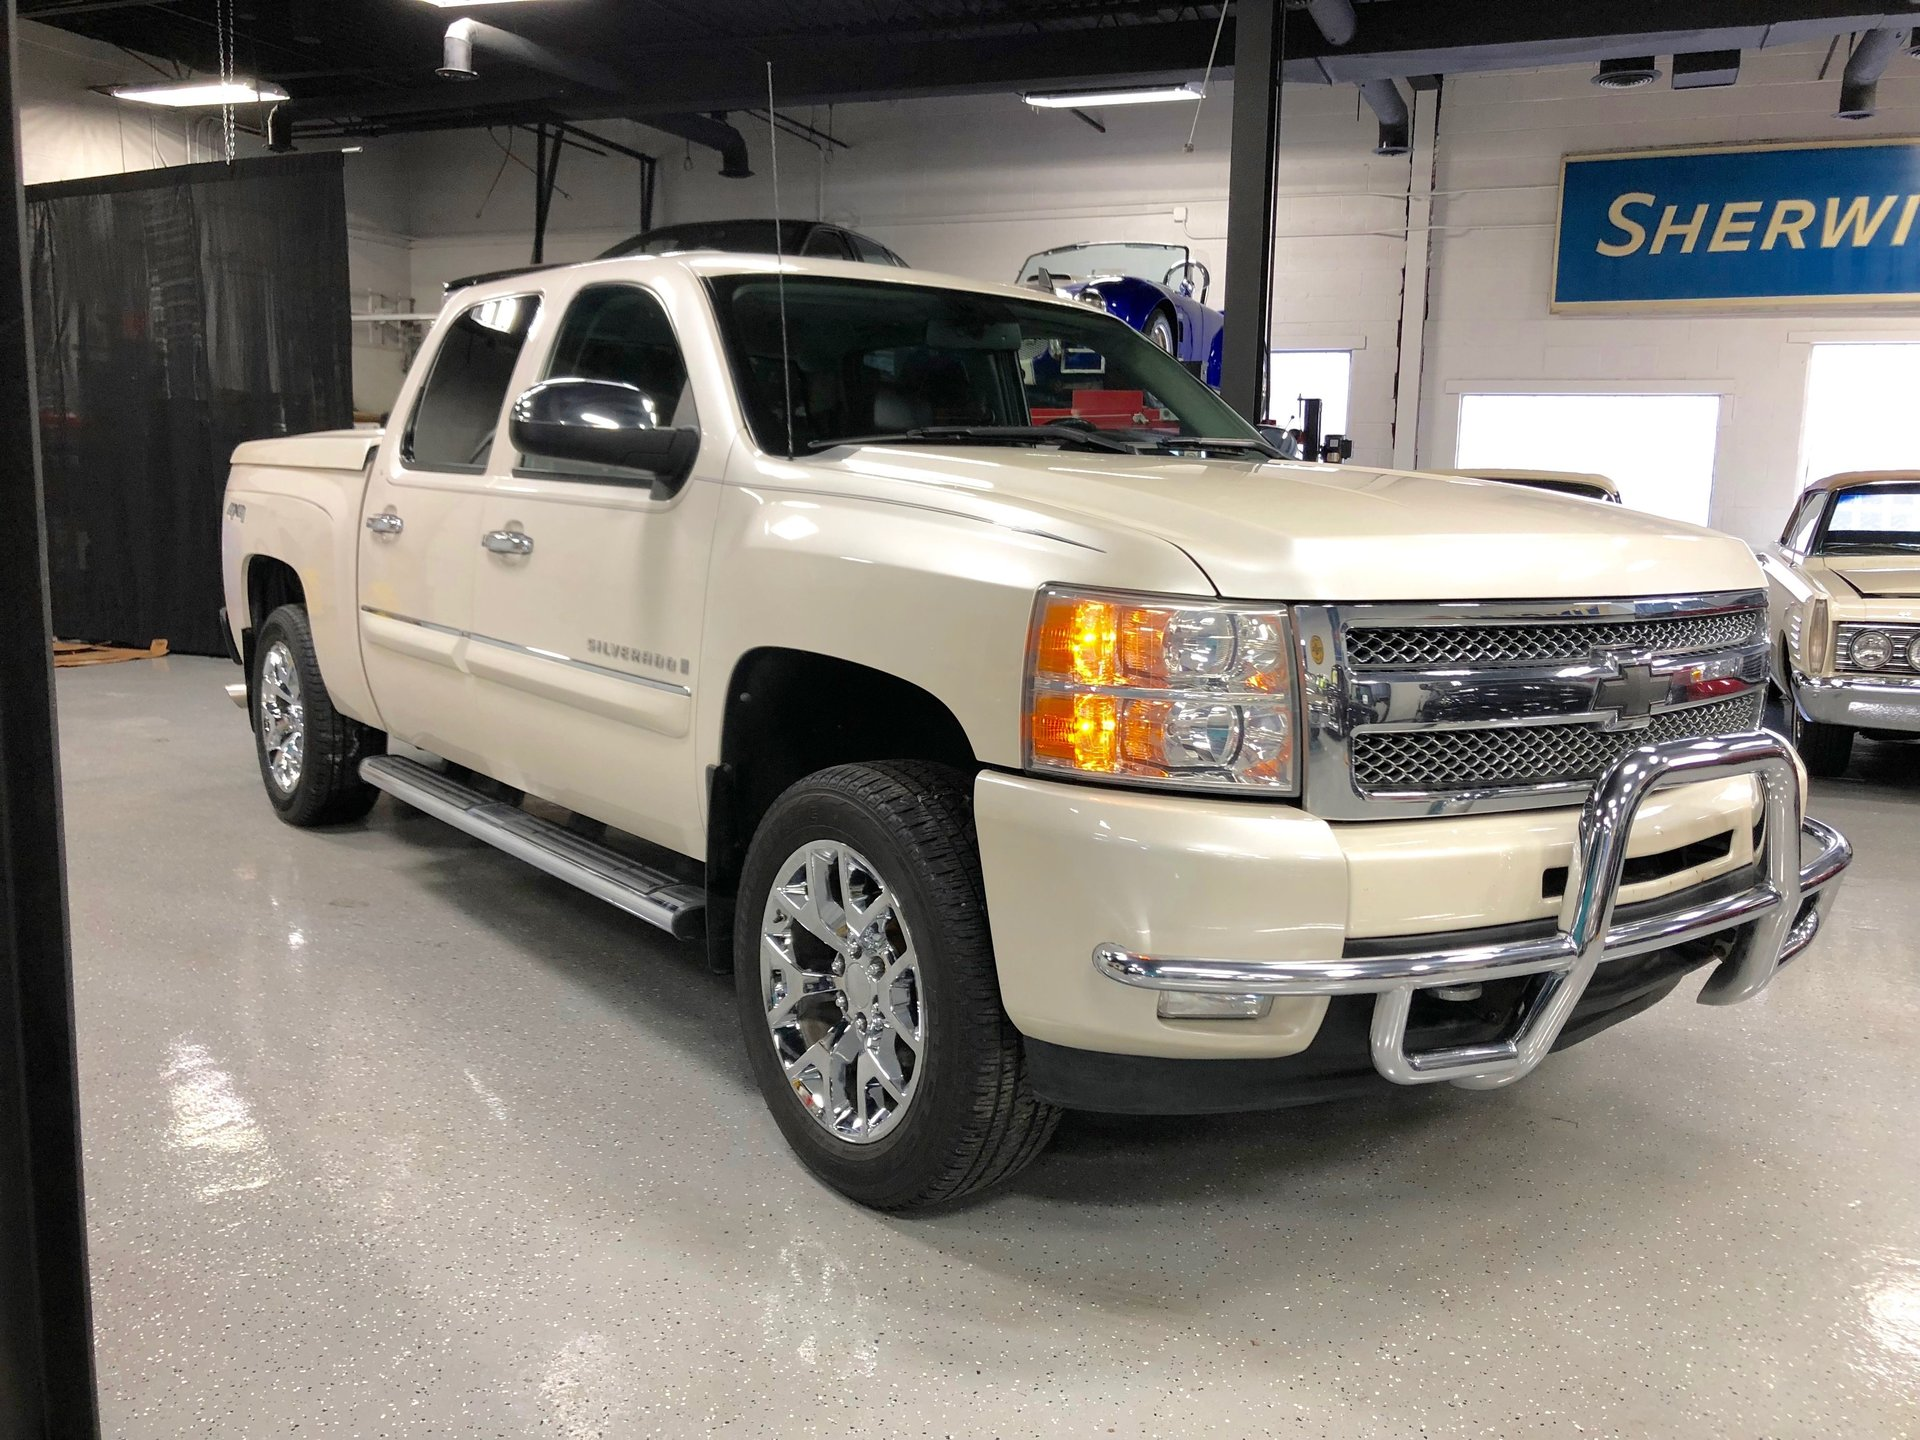 2009 chevrolet silverado ltz for sale 50973 mcg. Black Bedroom Furniture Sets. Home Design Ideas